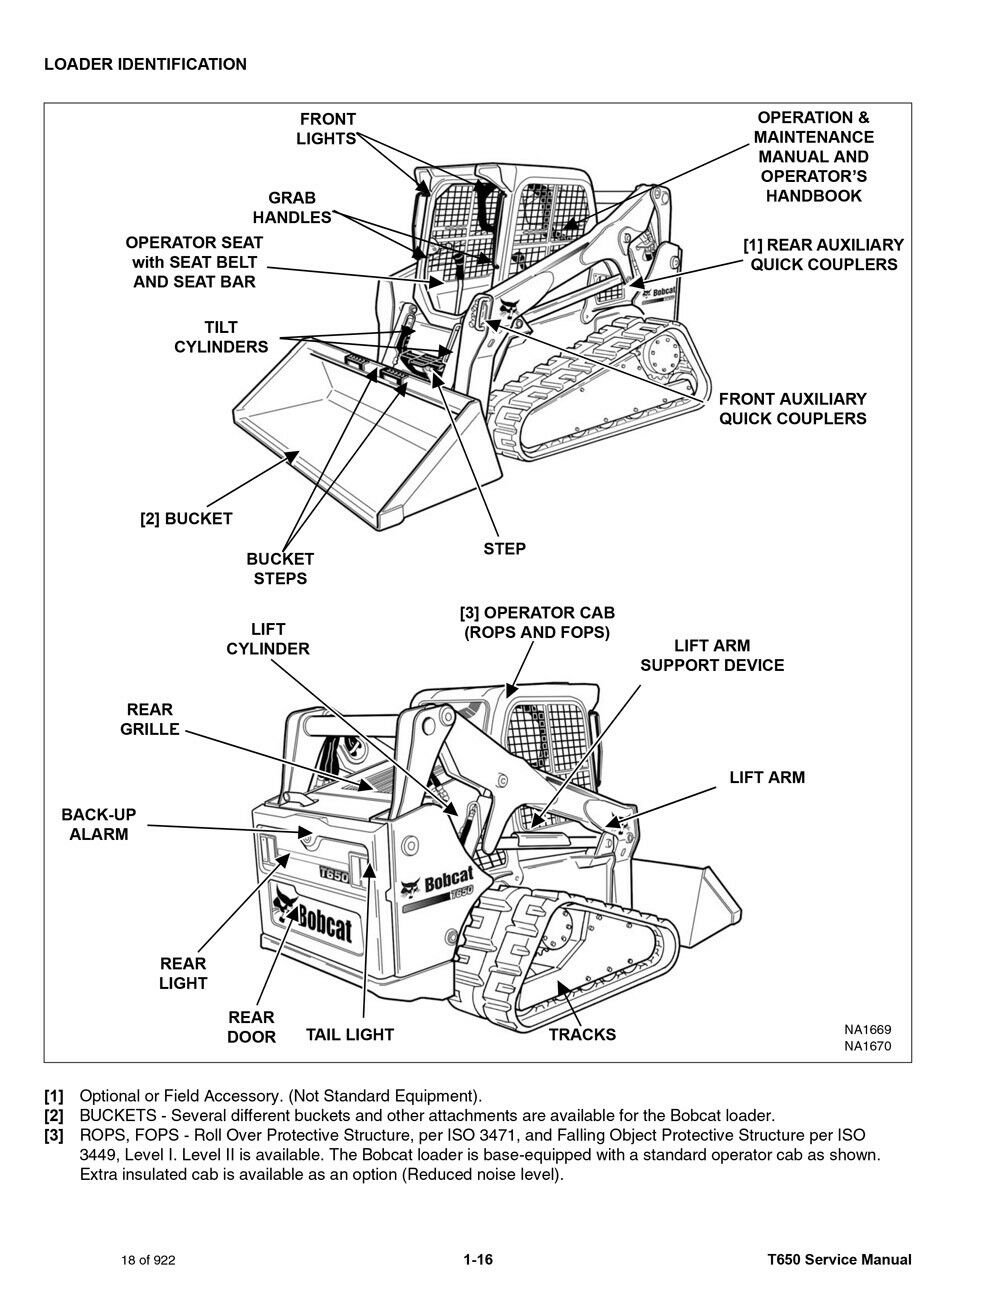 Bobcat Textron Wiring Diagram Auto Electrical 2001 Lincoln Town Car Harness T3101 Mower Riding Charging